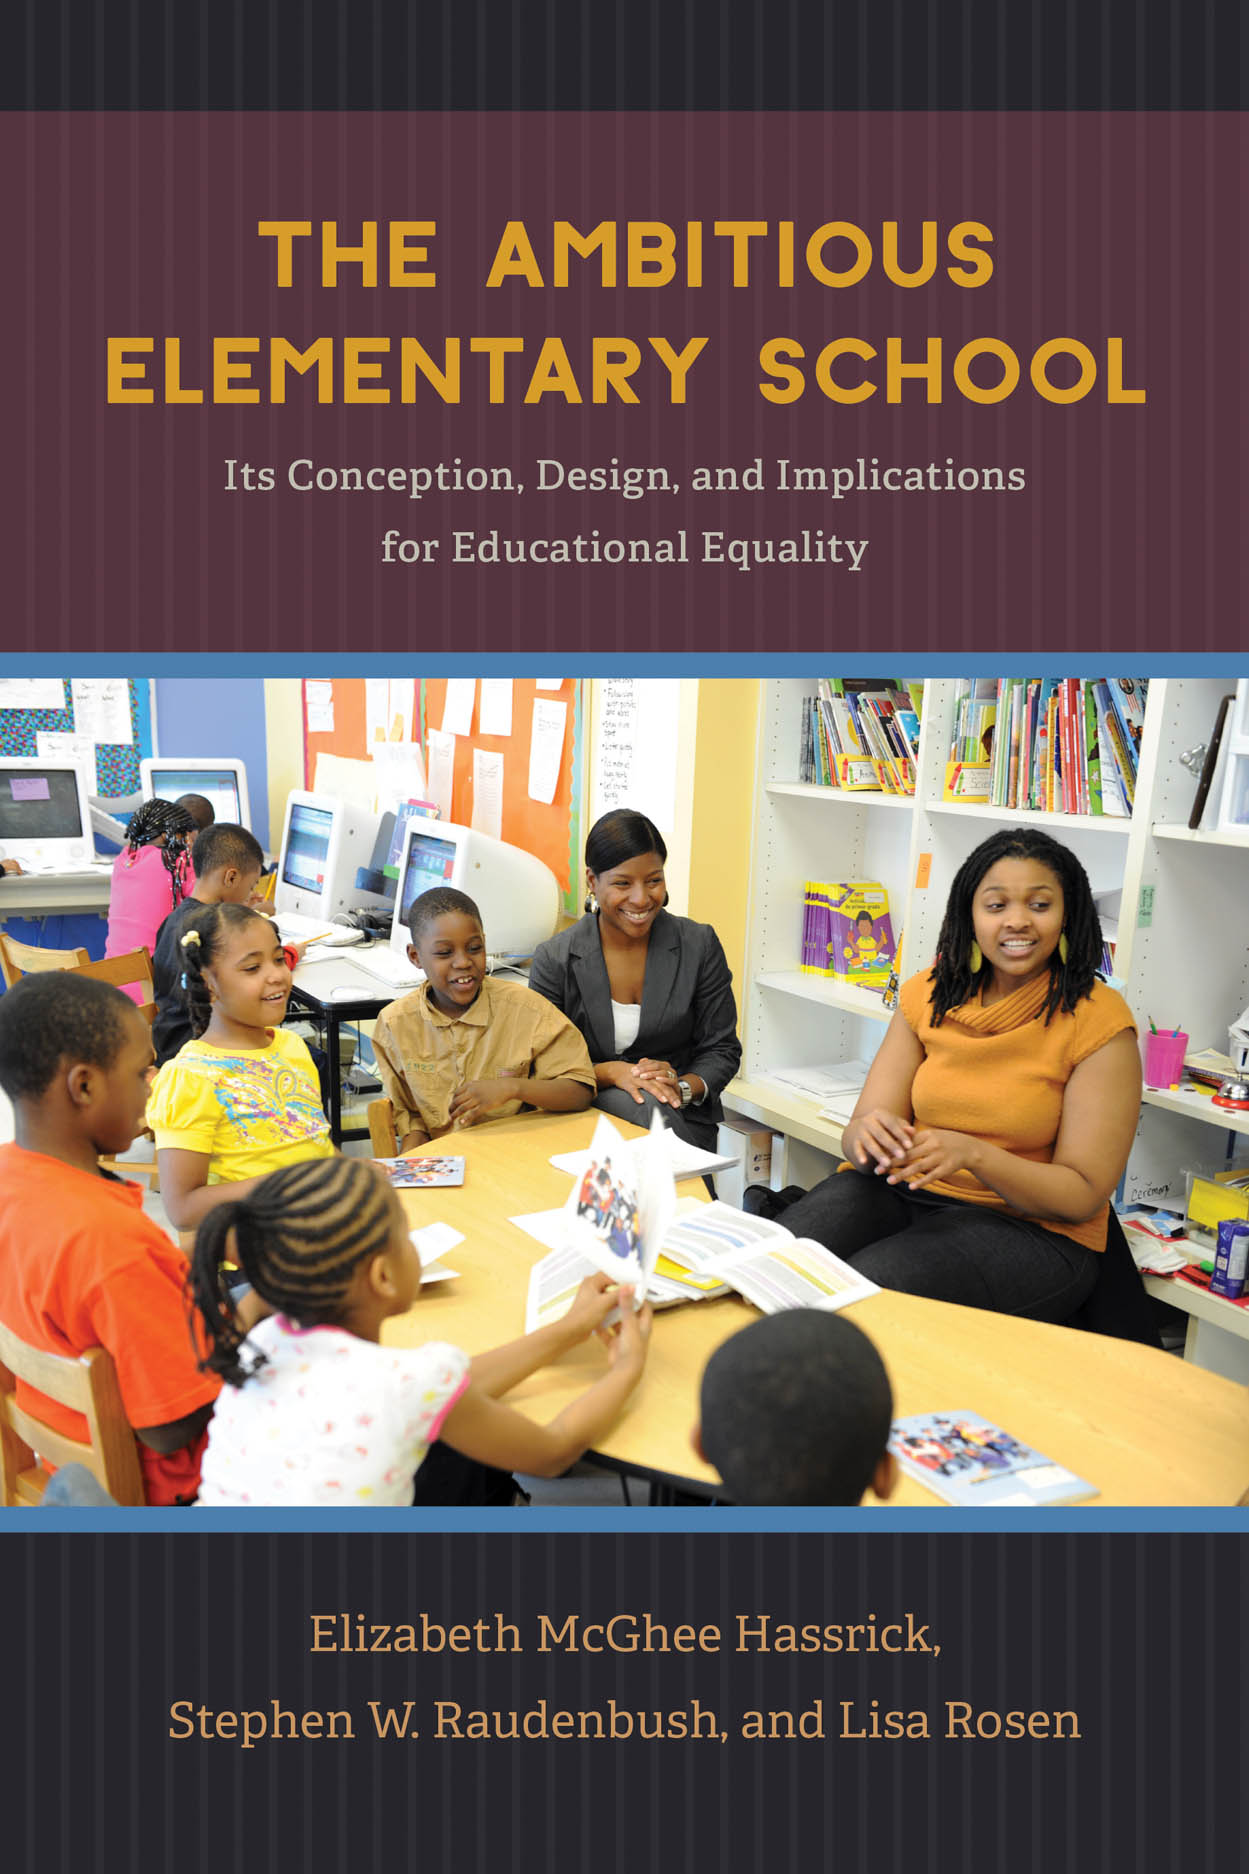 The Ambitious Elementary School: Its Conception, Design, and Implications for Educational Equality